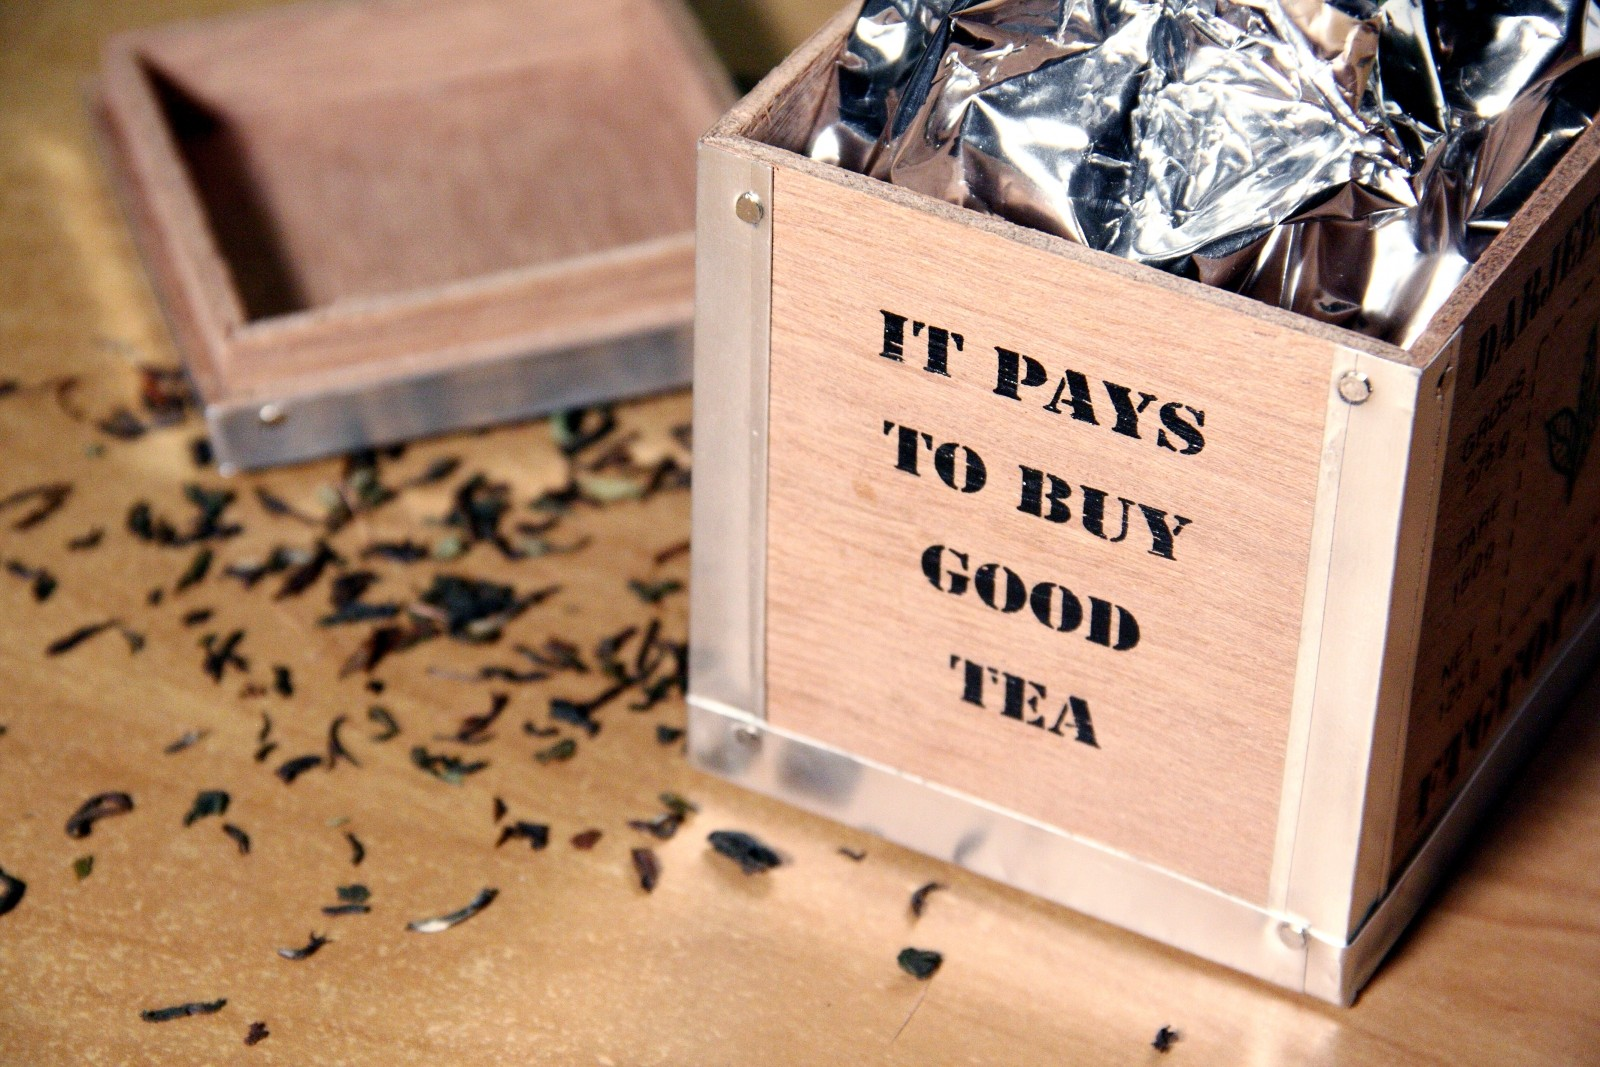 'It pays to buy good tea' printed on the side of an open box of tea